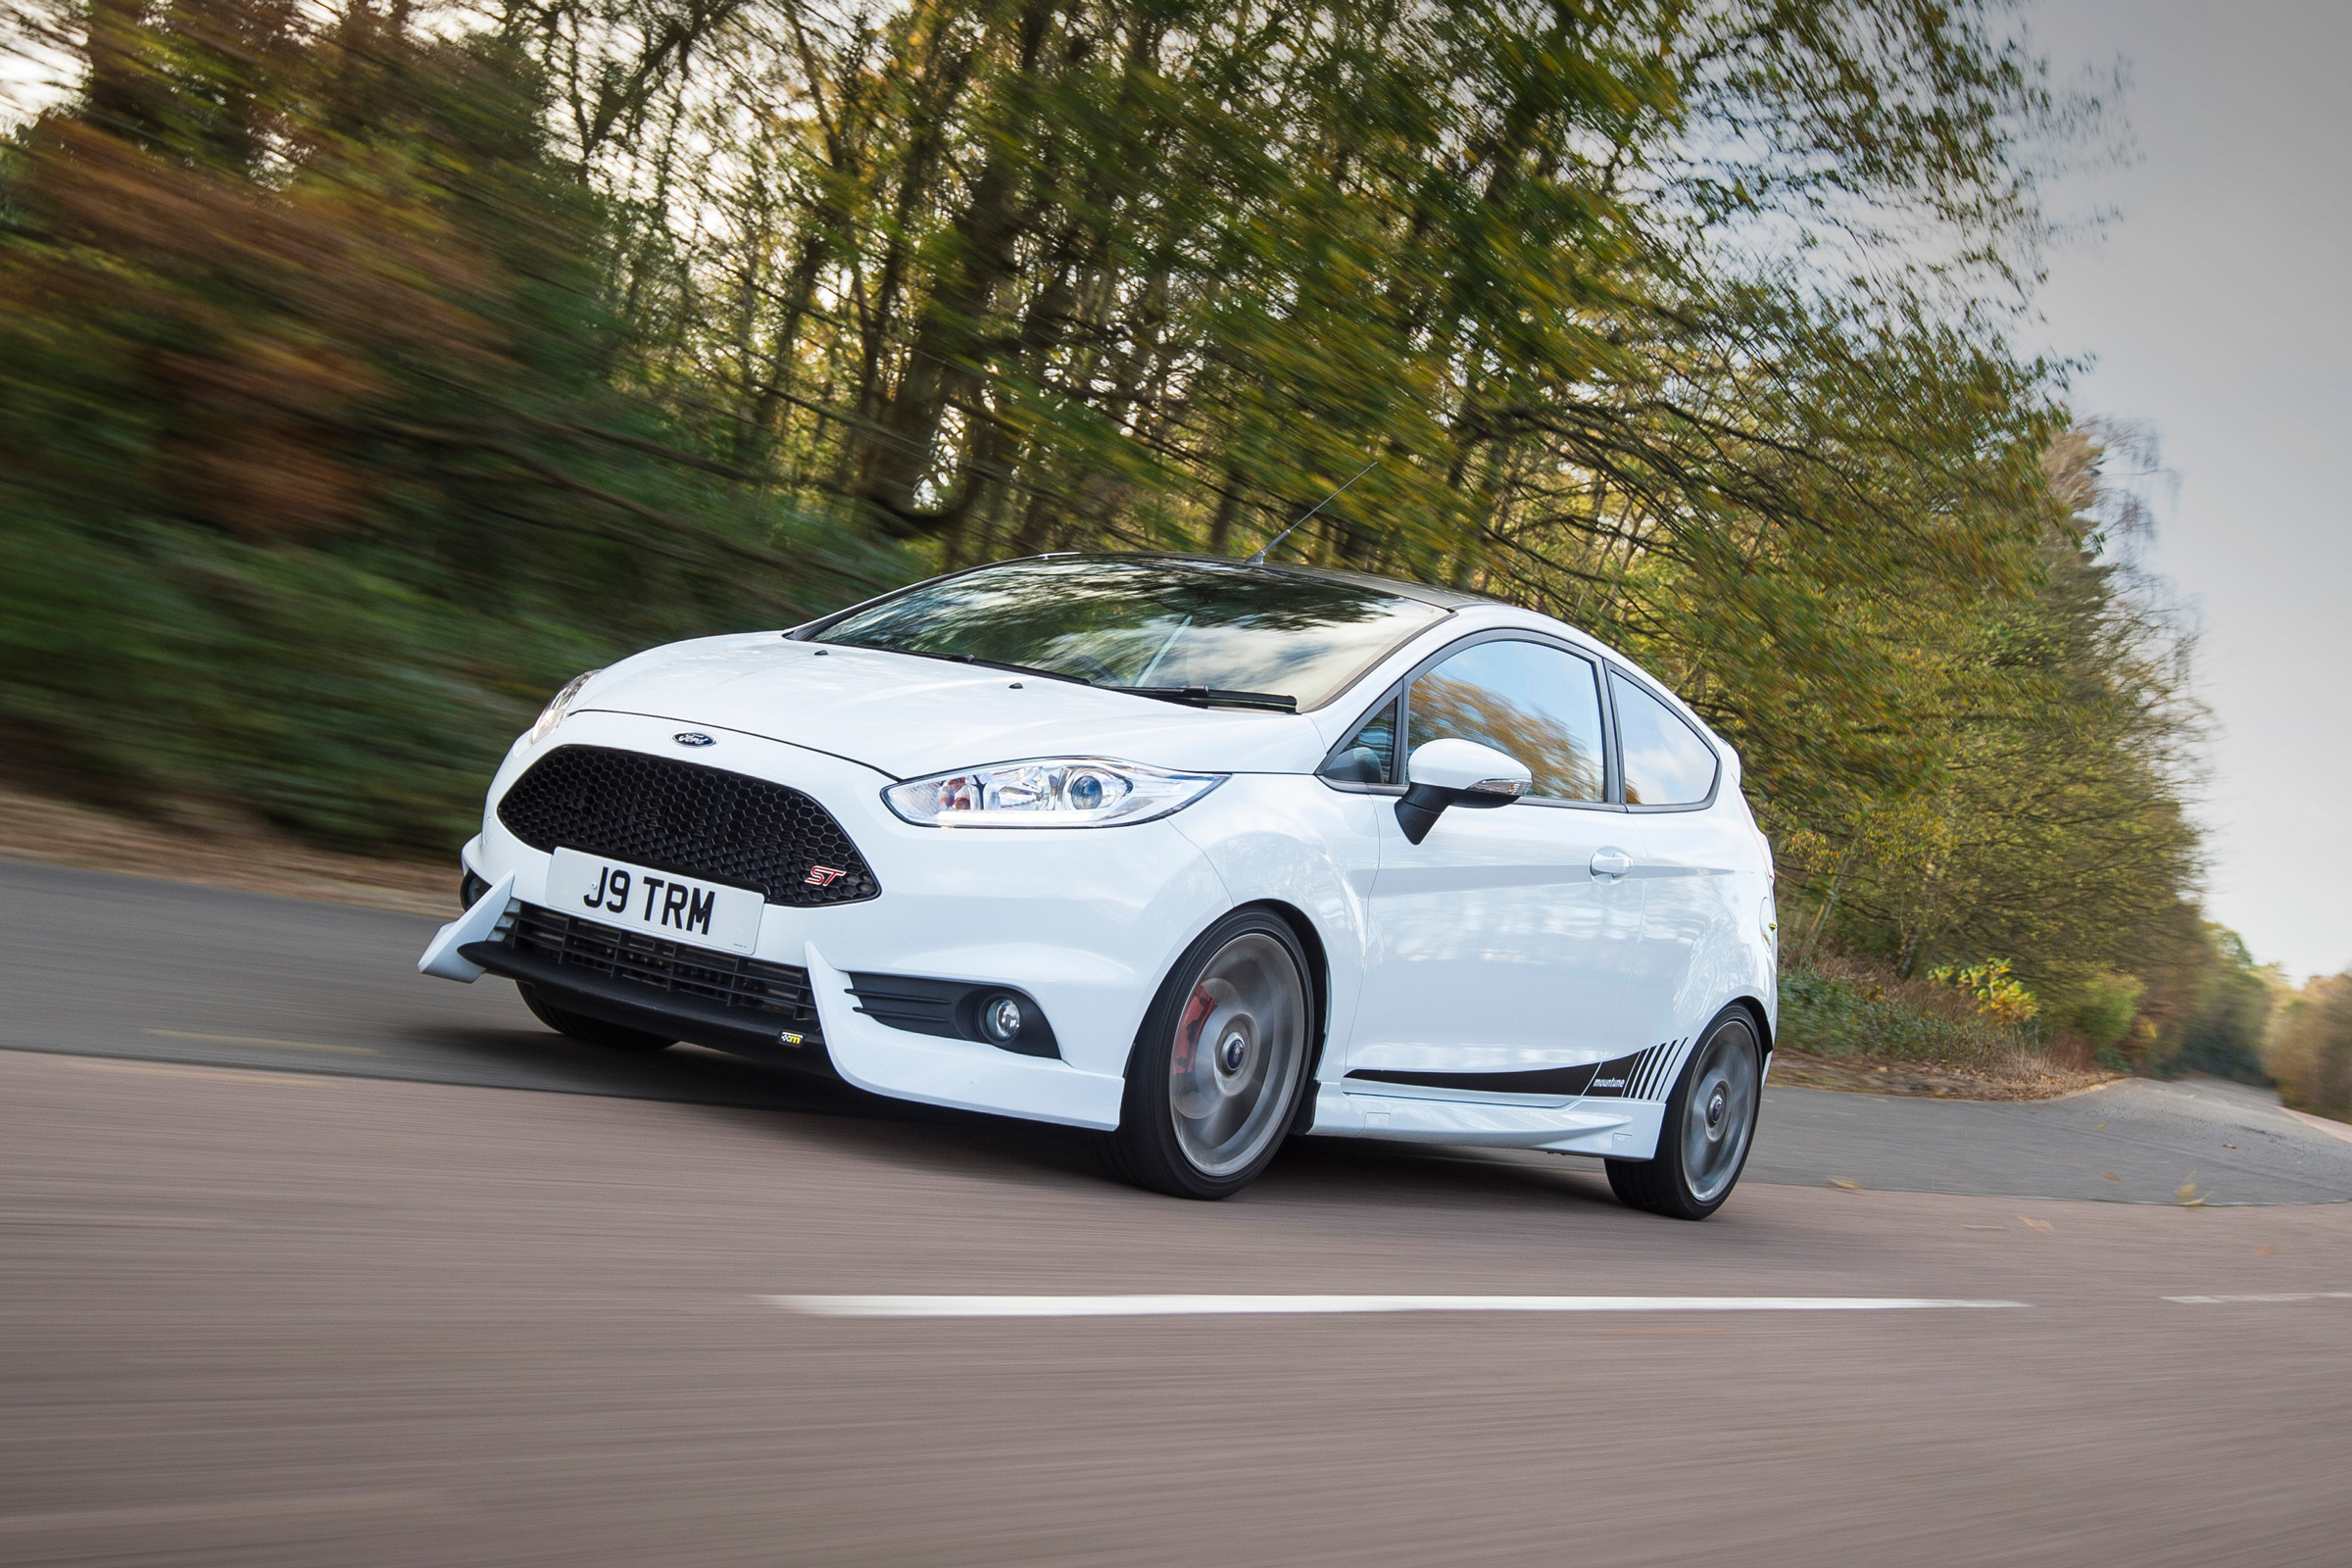 The Fiesta ST proves that Ford still knows exactly what makes a stunning hot hatch